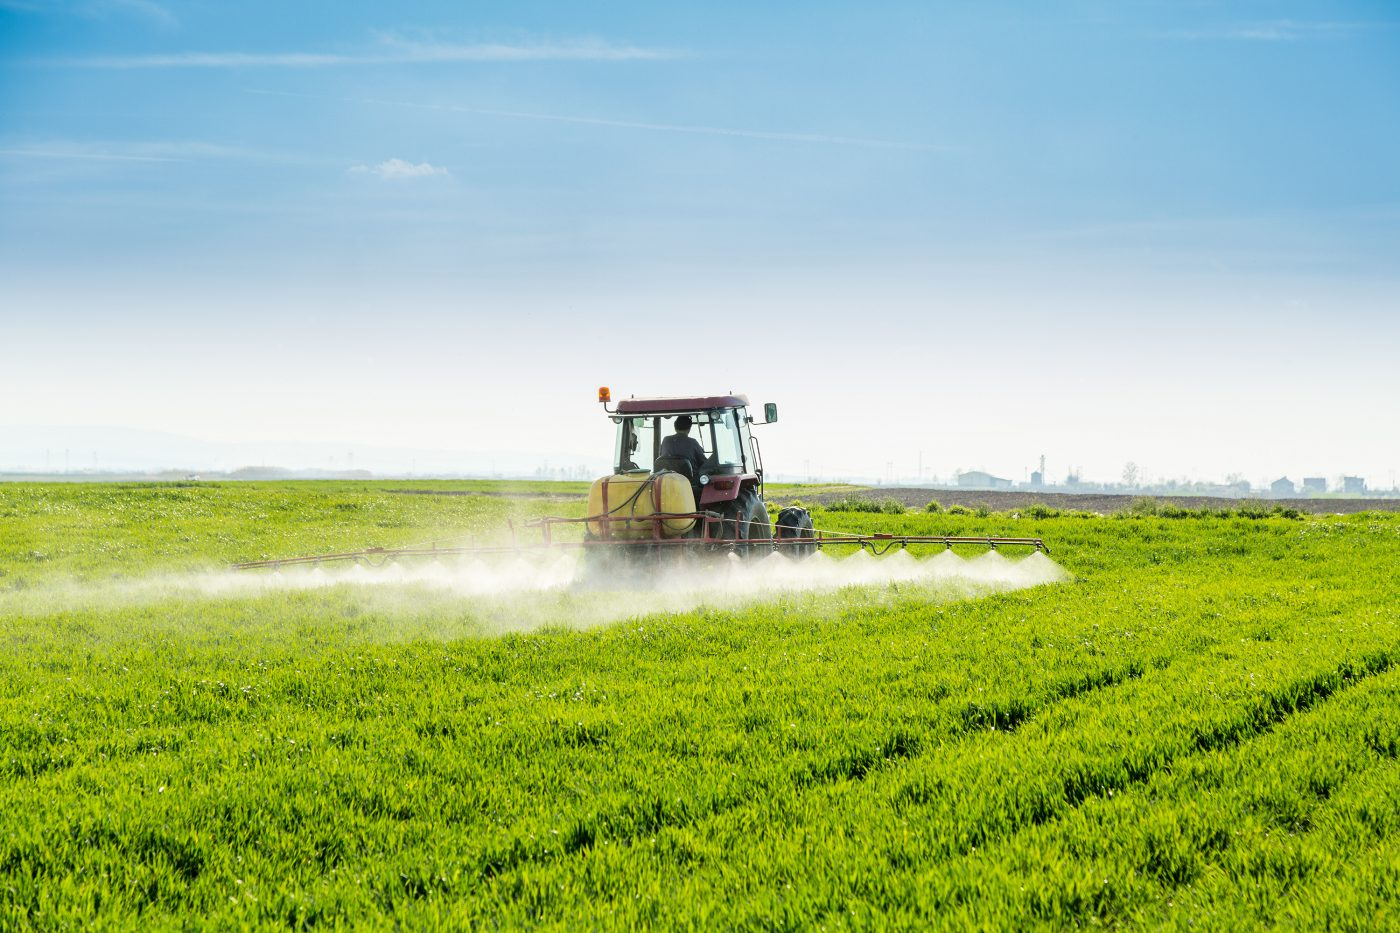 Fungicides disrupt gene expression, possibly increasing the risk of neurodegenerative disease.